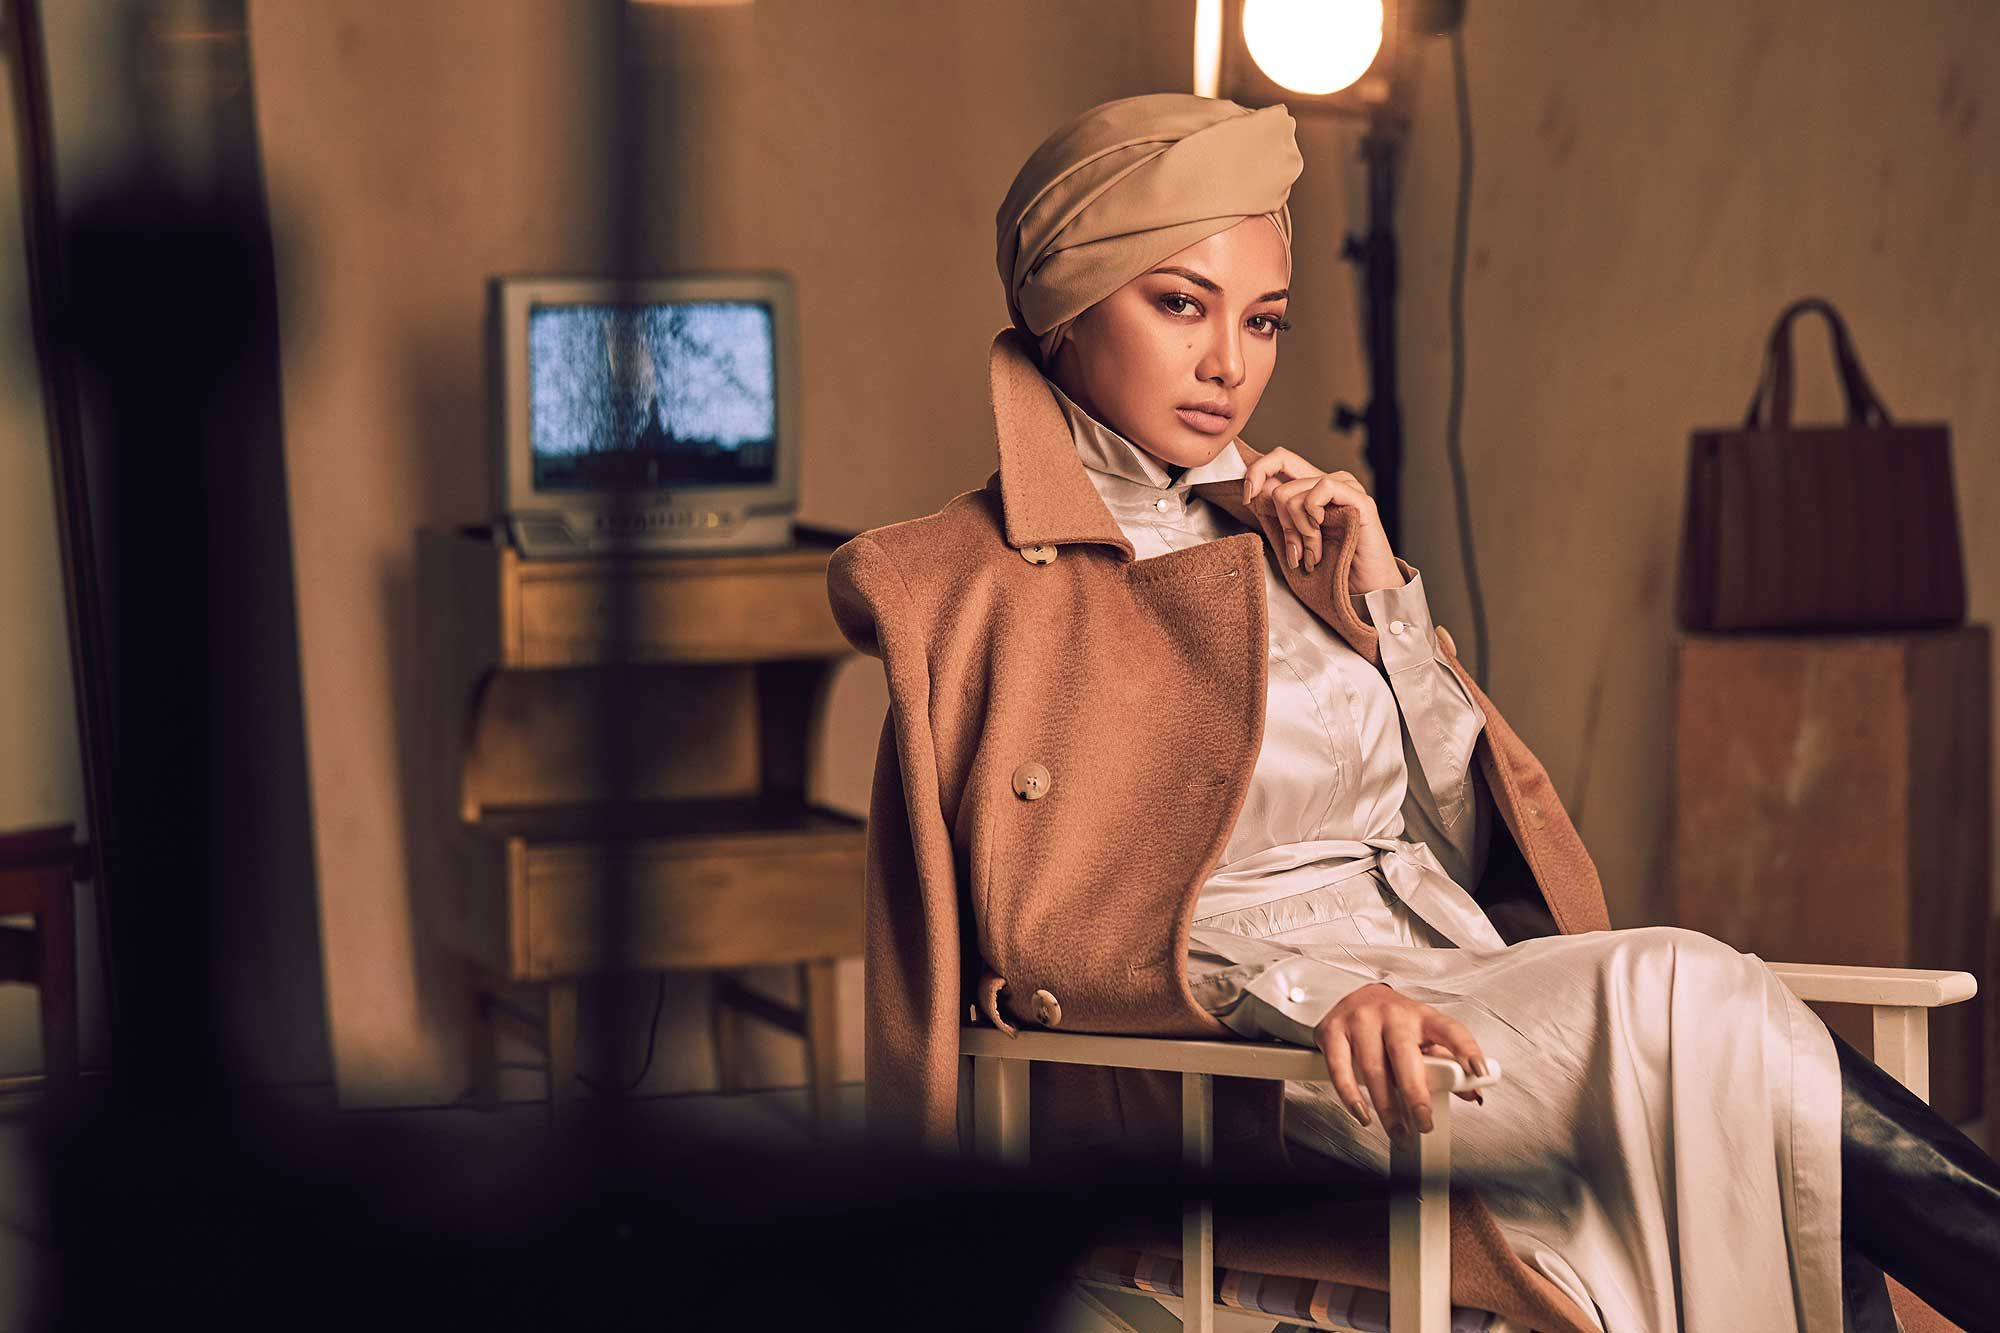 Max Mara Special: Neelofa Reveals Intimate Details About Her Passionate Love Affair With Fashion